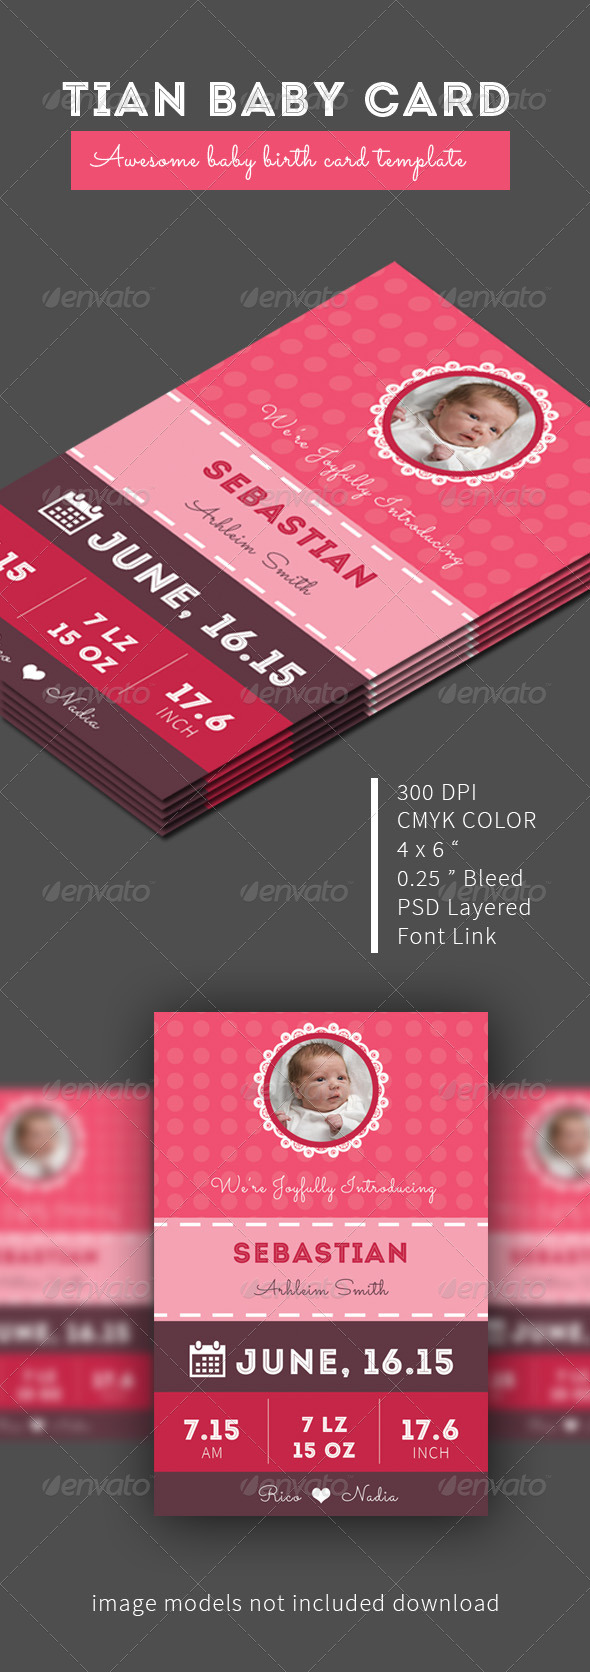 25+ PSD Print Templates Cards and Invites Weddings